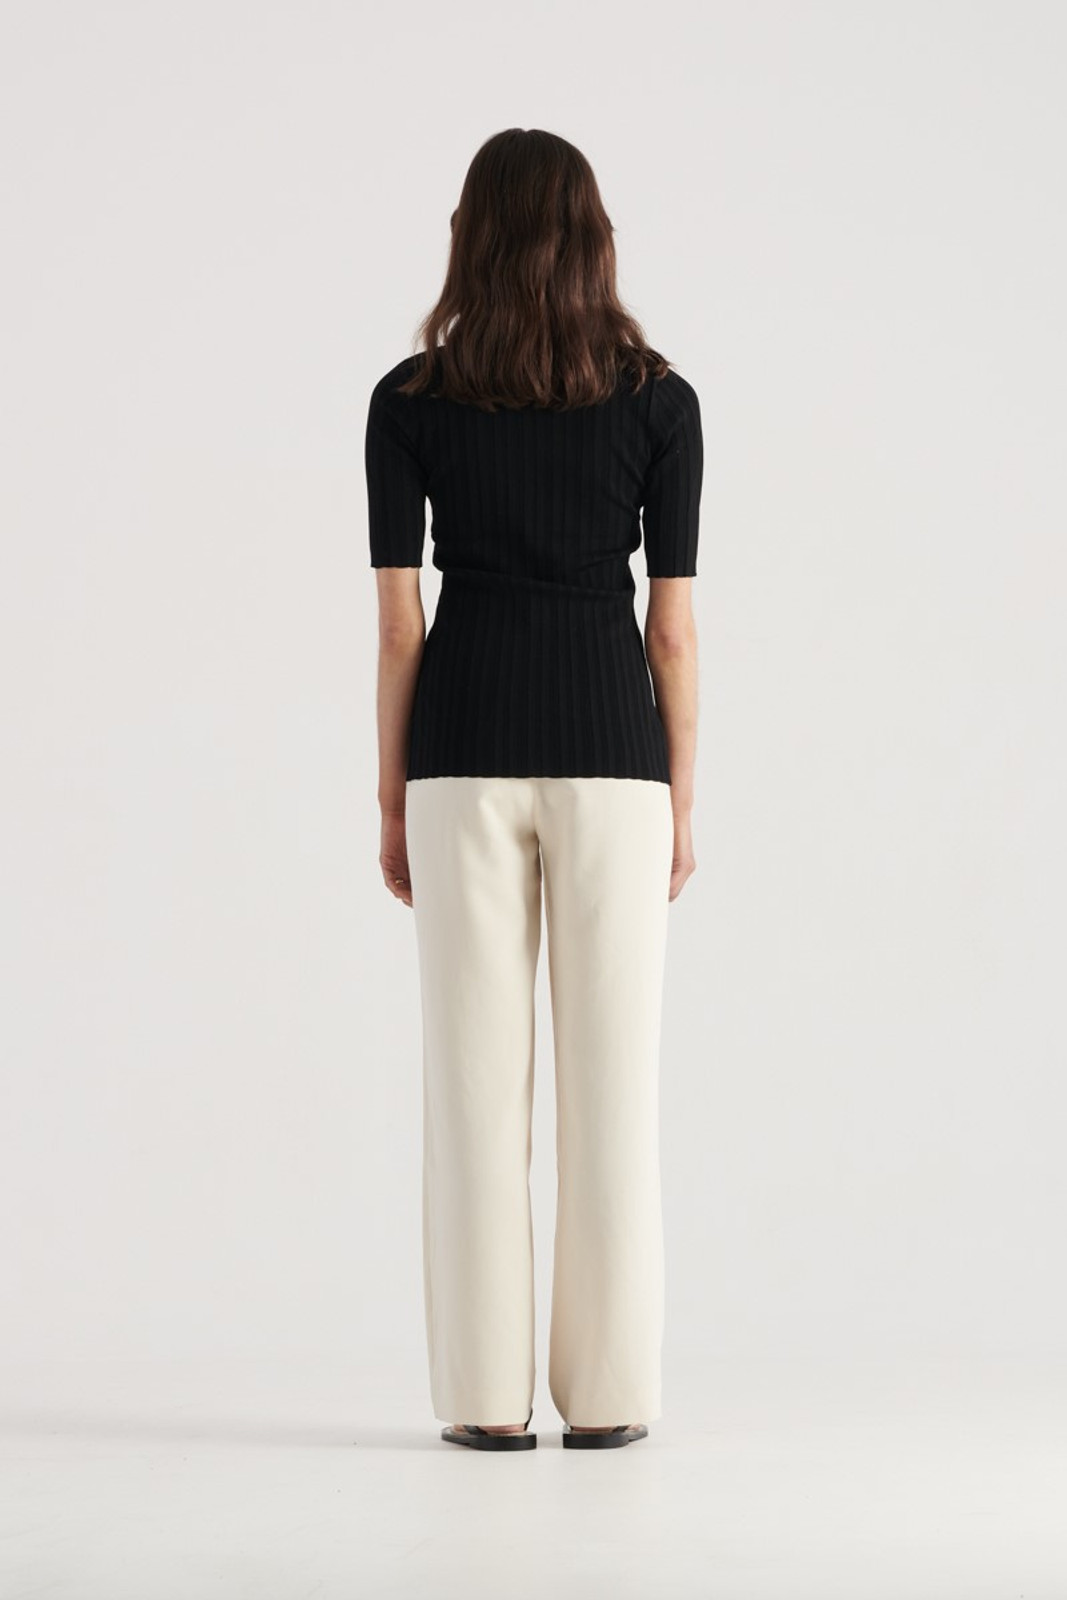 Elka Collective Melody Knit Black  3